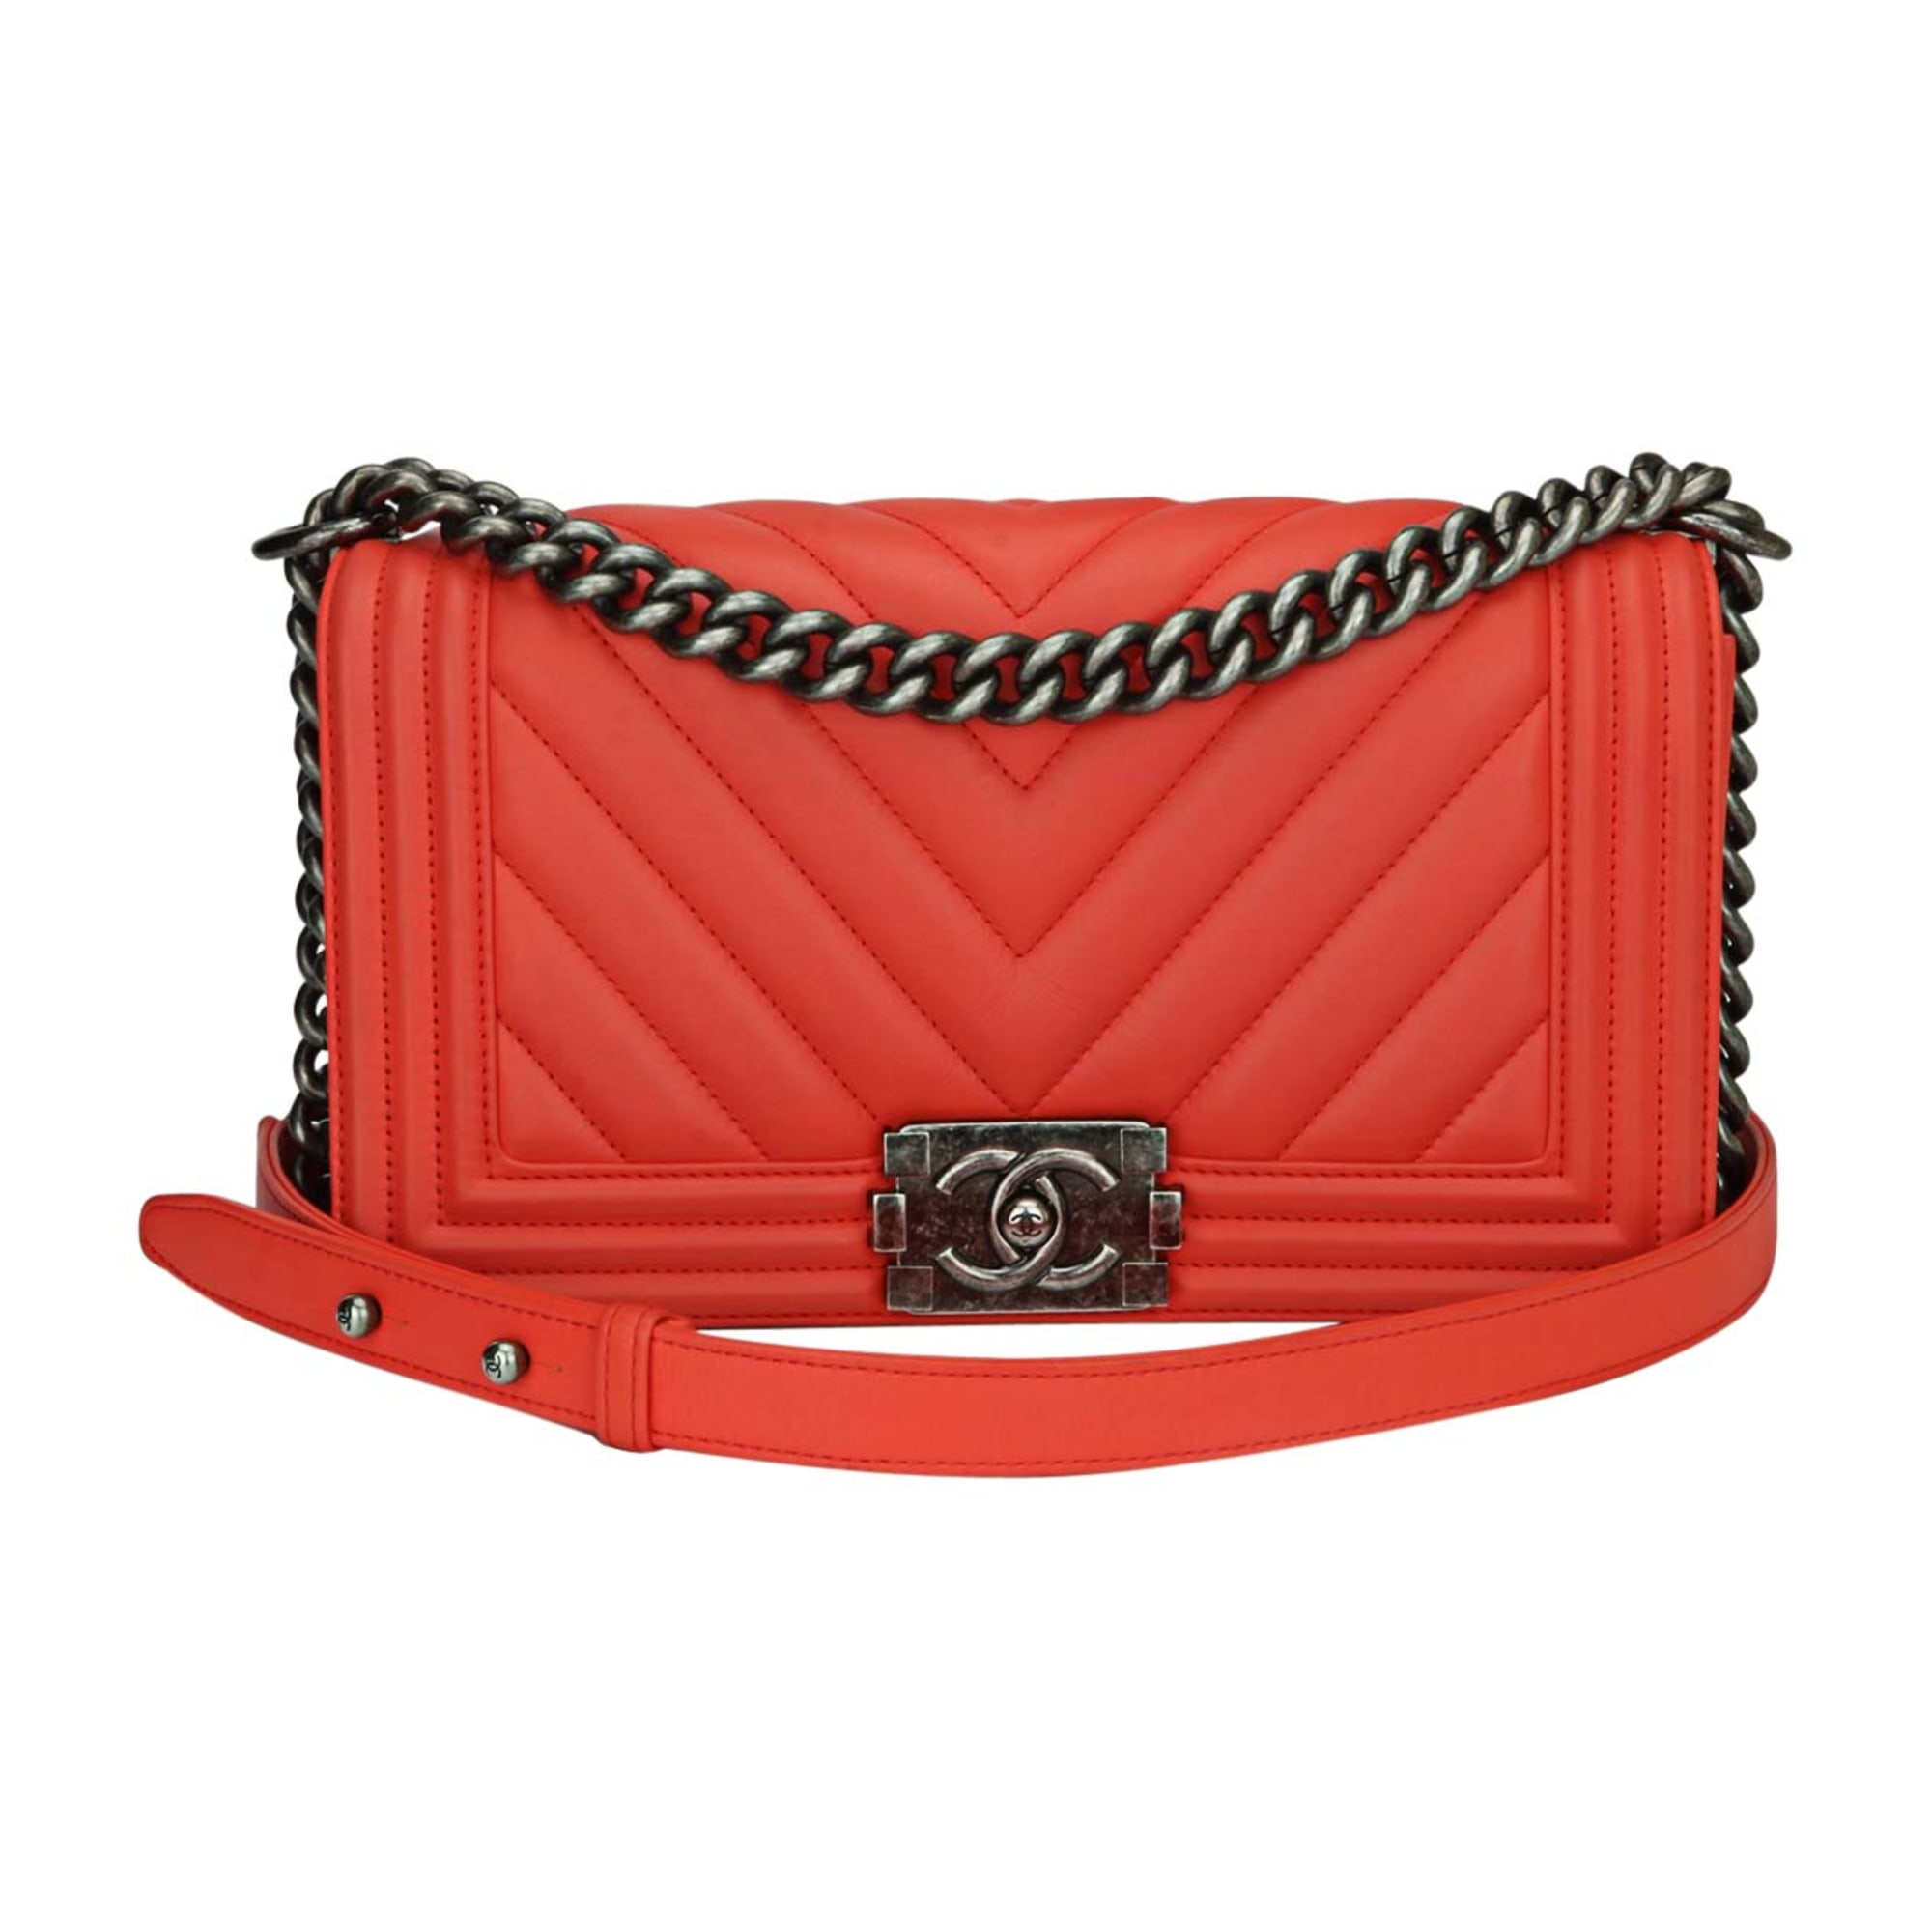 Sac à main en cuir CHANEL boy rouge - 7587694 339d30b3315